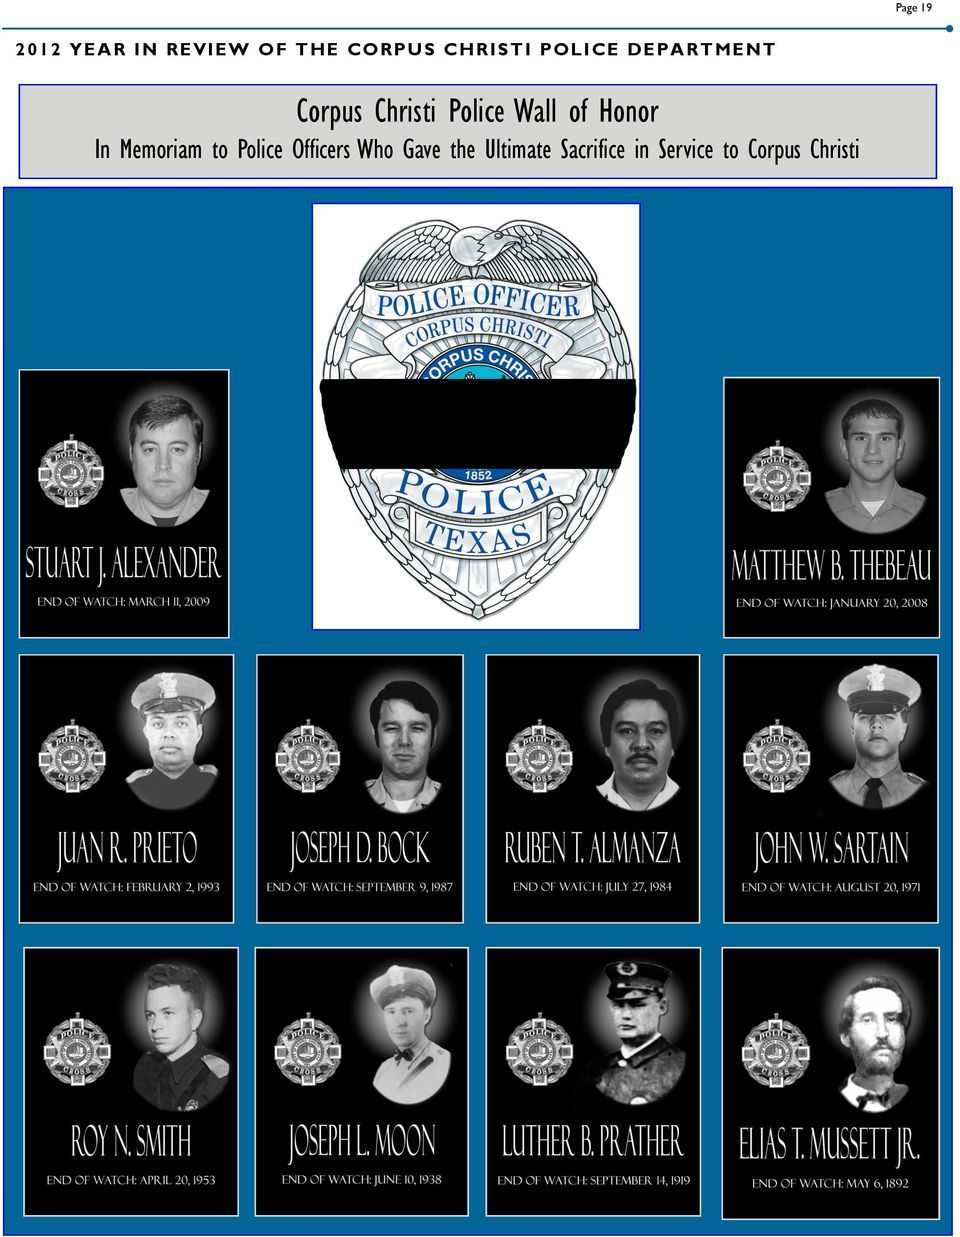 Wall of Honor In Memoriam to Police Officers Who